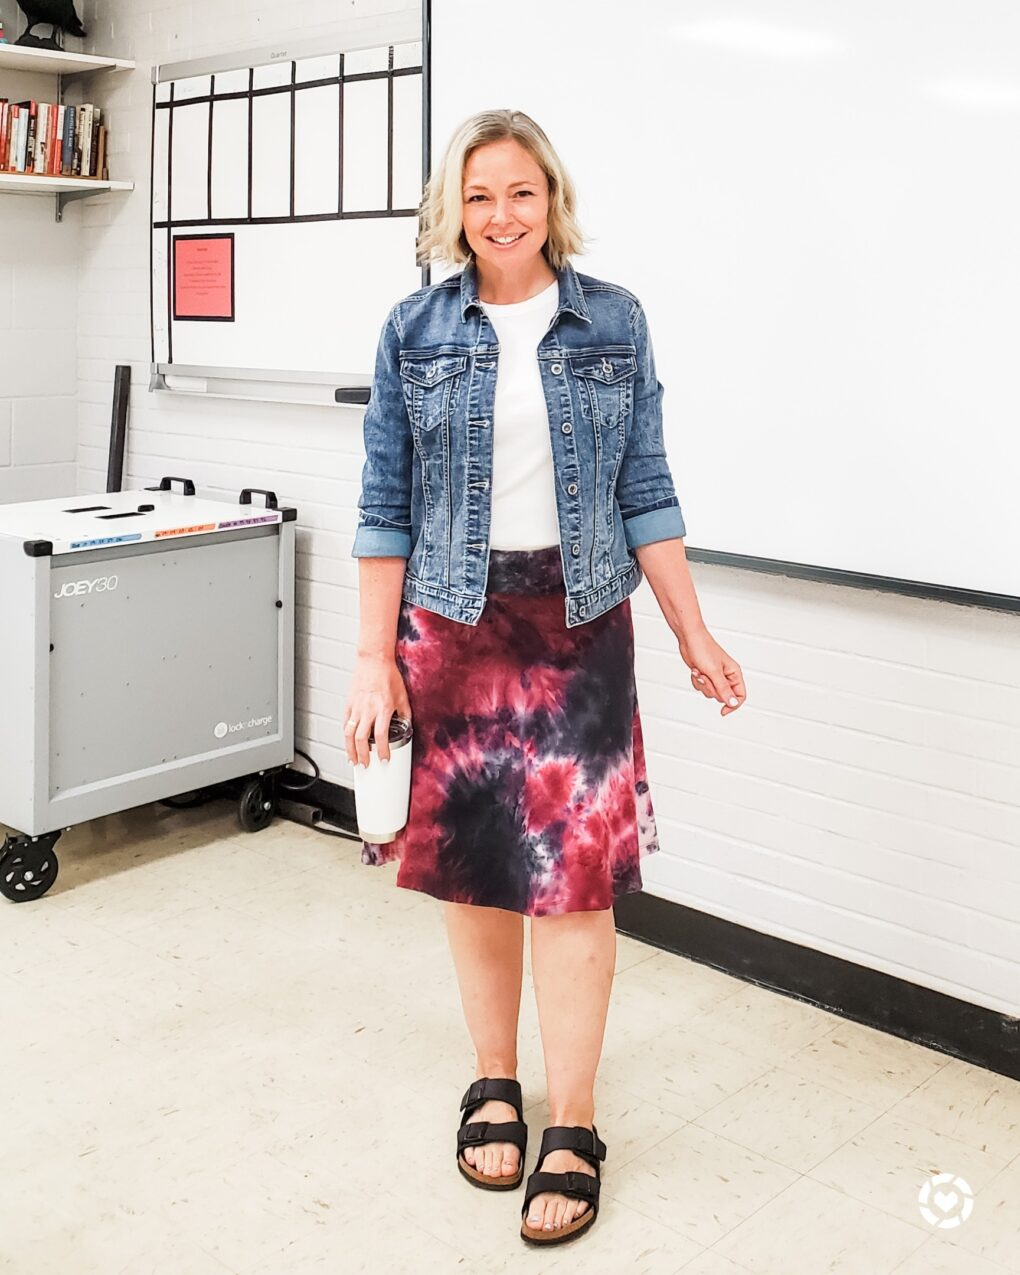 Denim jacket with tank top and midi skirt outfit for teacher